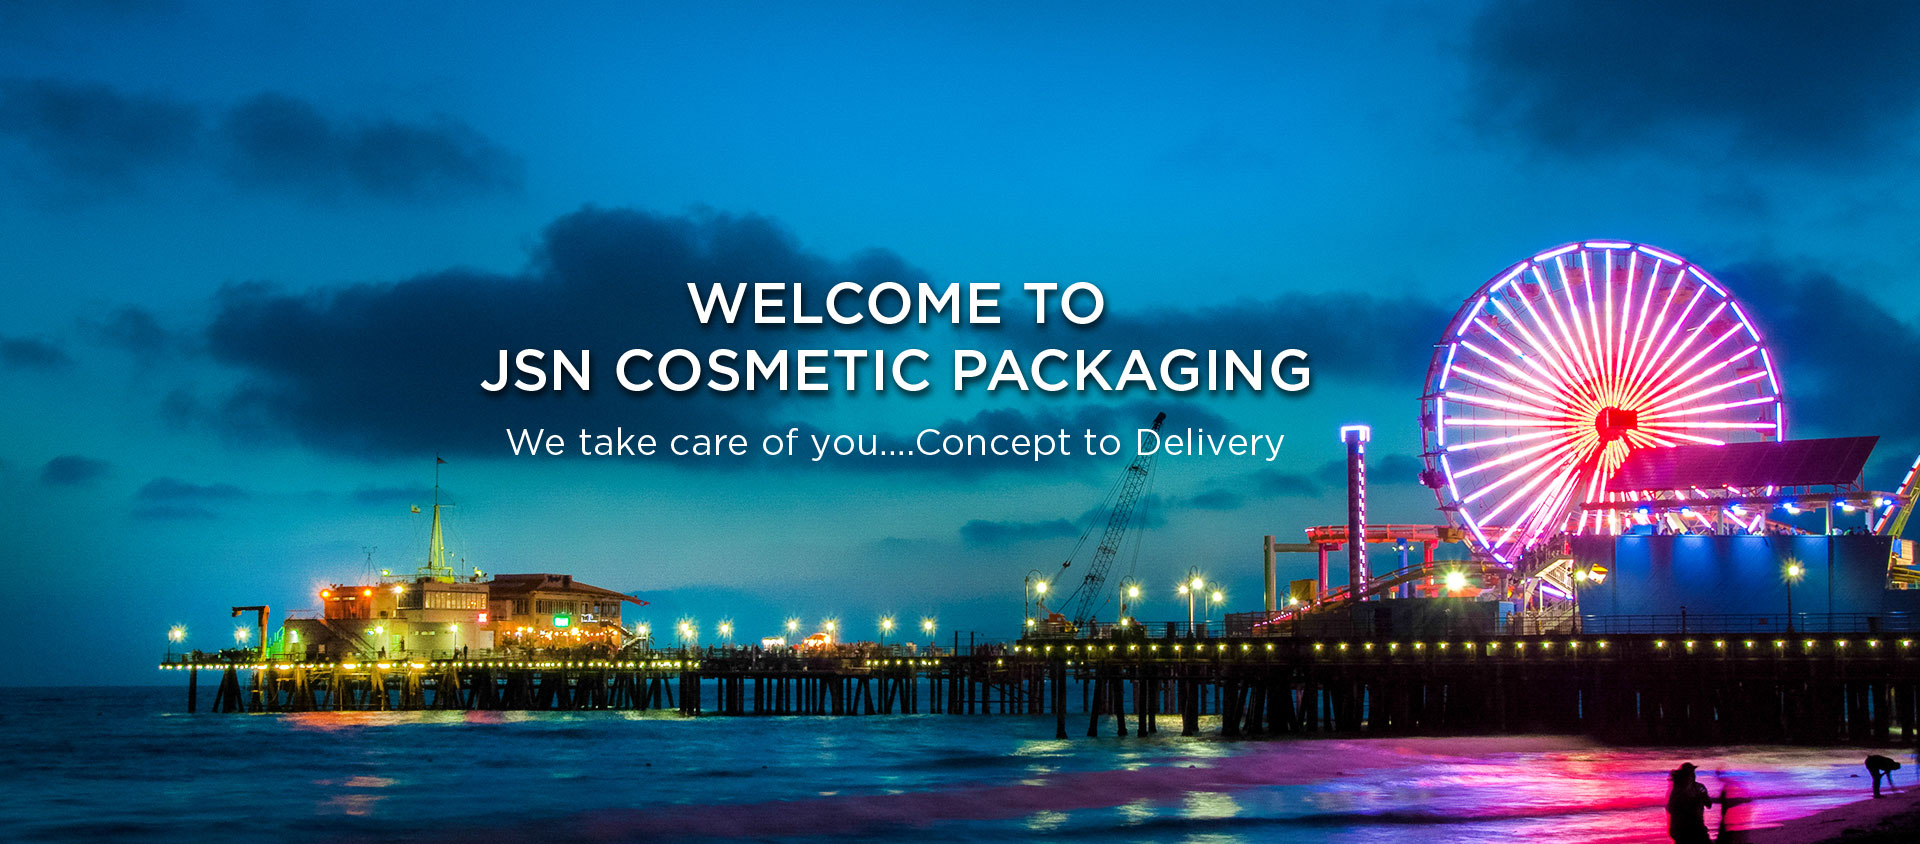 JSN Cosmetic Packaging